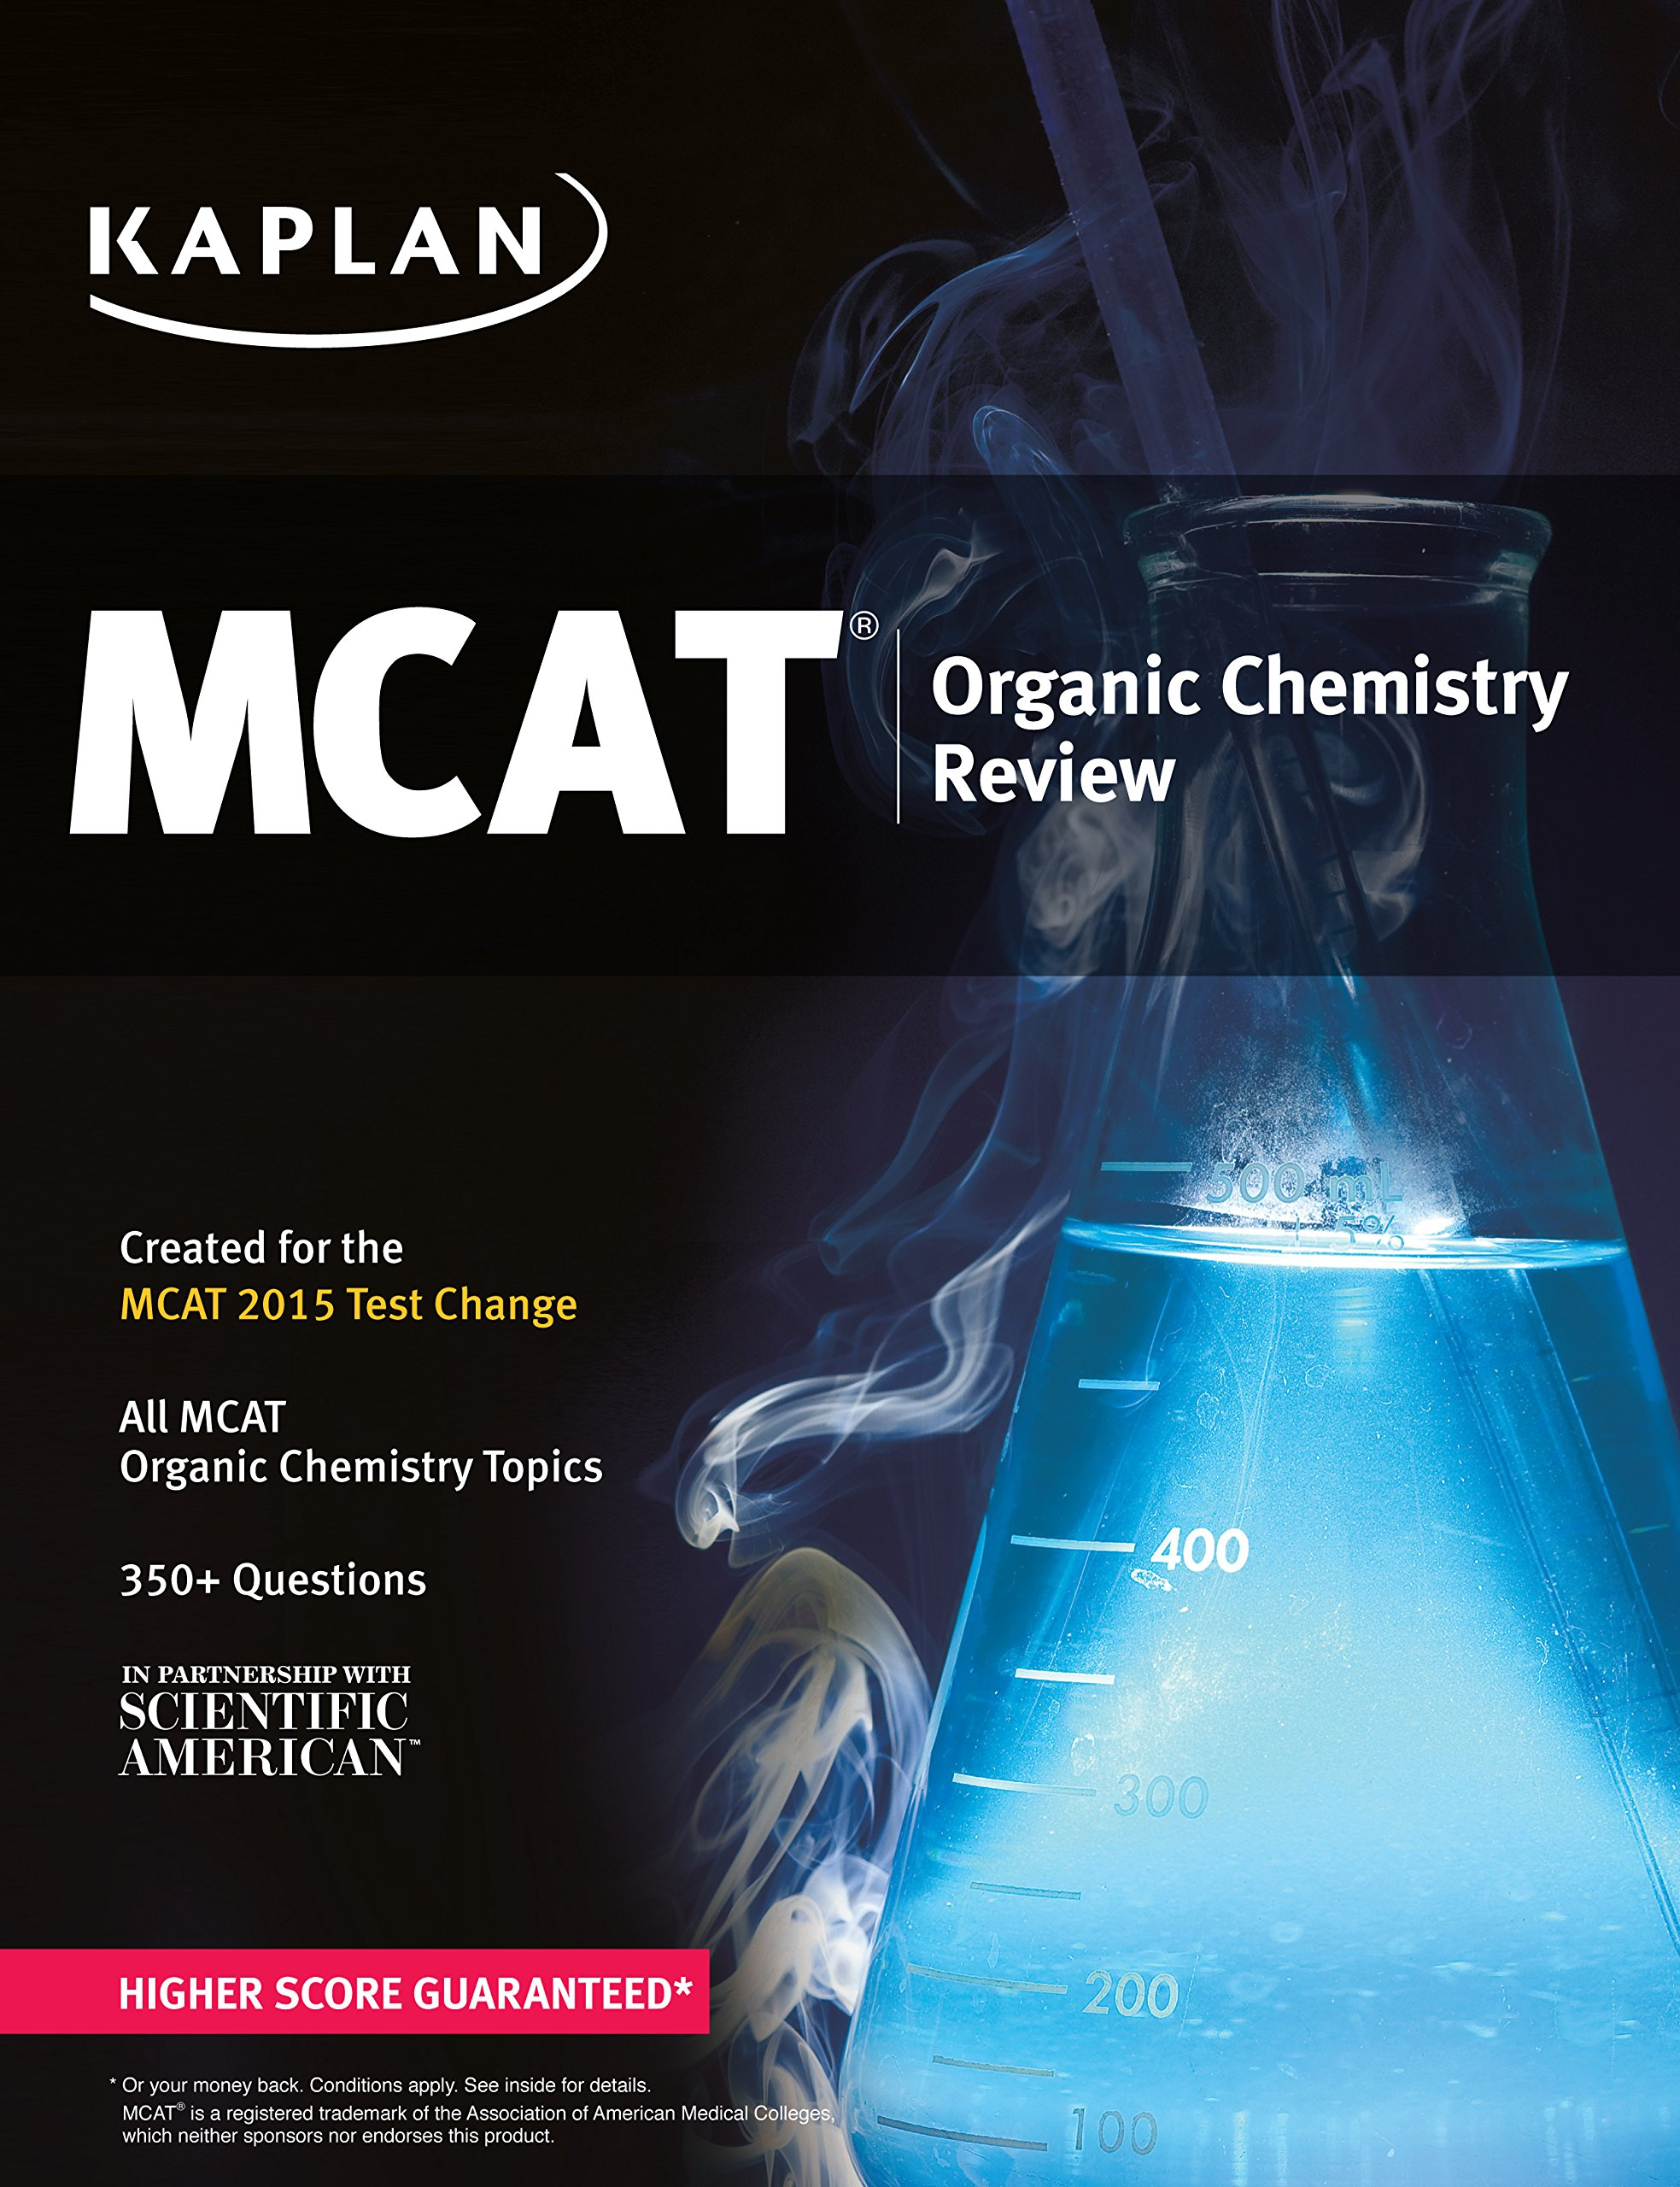 kaplan mcat organic chemistry review created for mcat  kaplan mcat organic chemistry review created for mcat 2015 kaplan 9781618656506 books ca